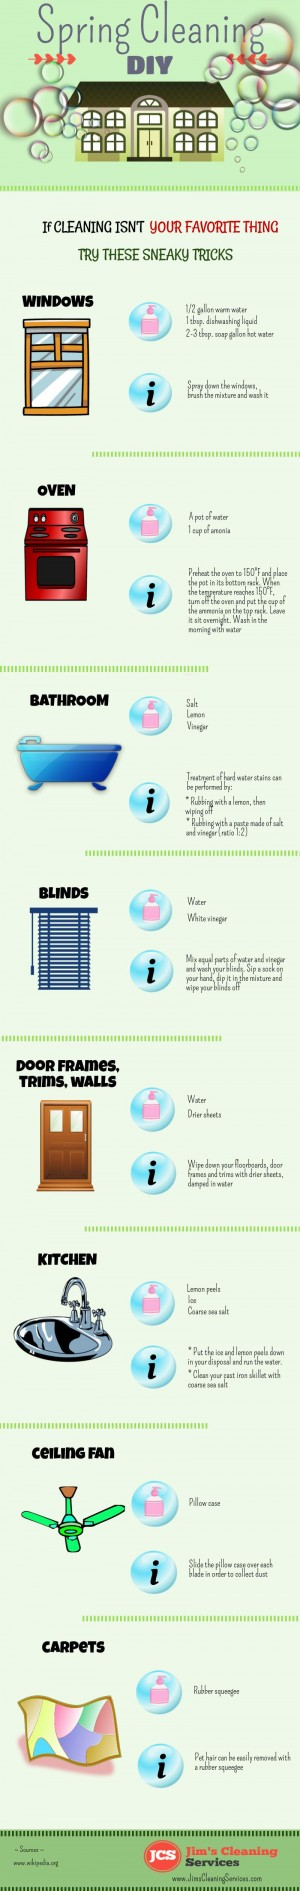 A short infographic about Spring Cleaning. Created by Jim's Cleaning Services.